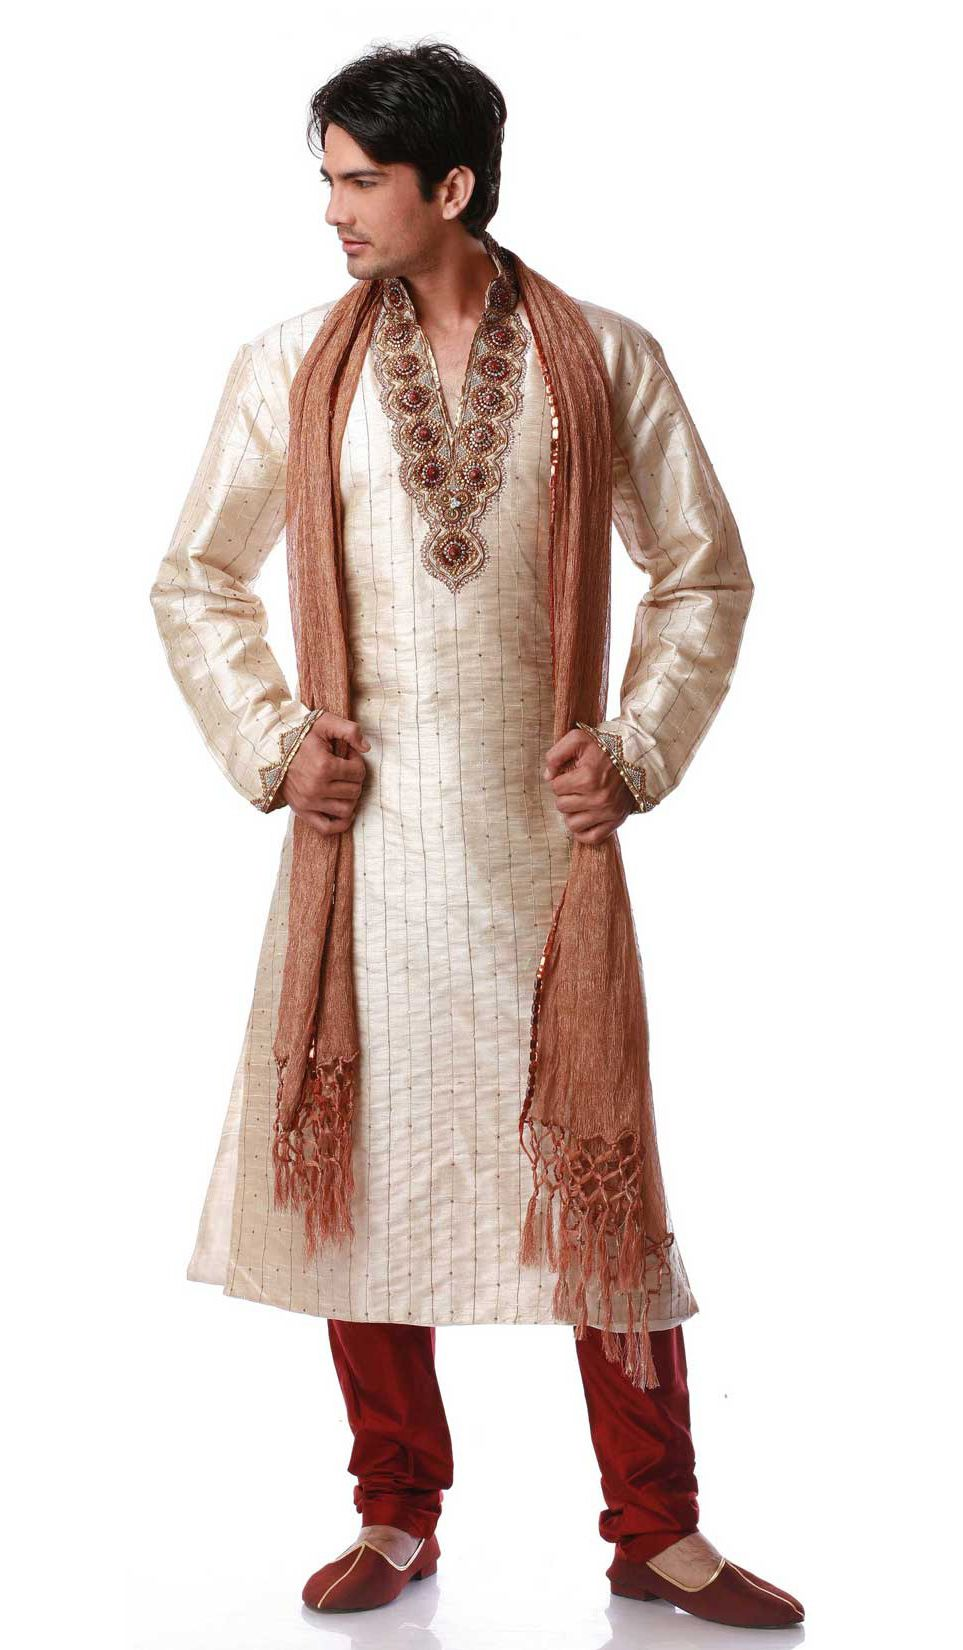 Groom kurta suits black wedding kurta designs asifa and nabeel men - Sherwani For Men Designs For Groom Model Collection Dress For Marriage Styles Images For Men Kurta Pajama For Men Sherwani For Men Designs For Groom Model